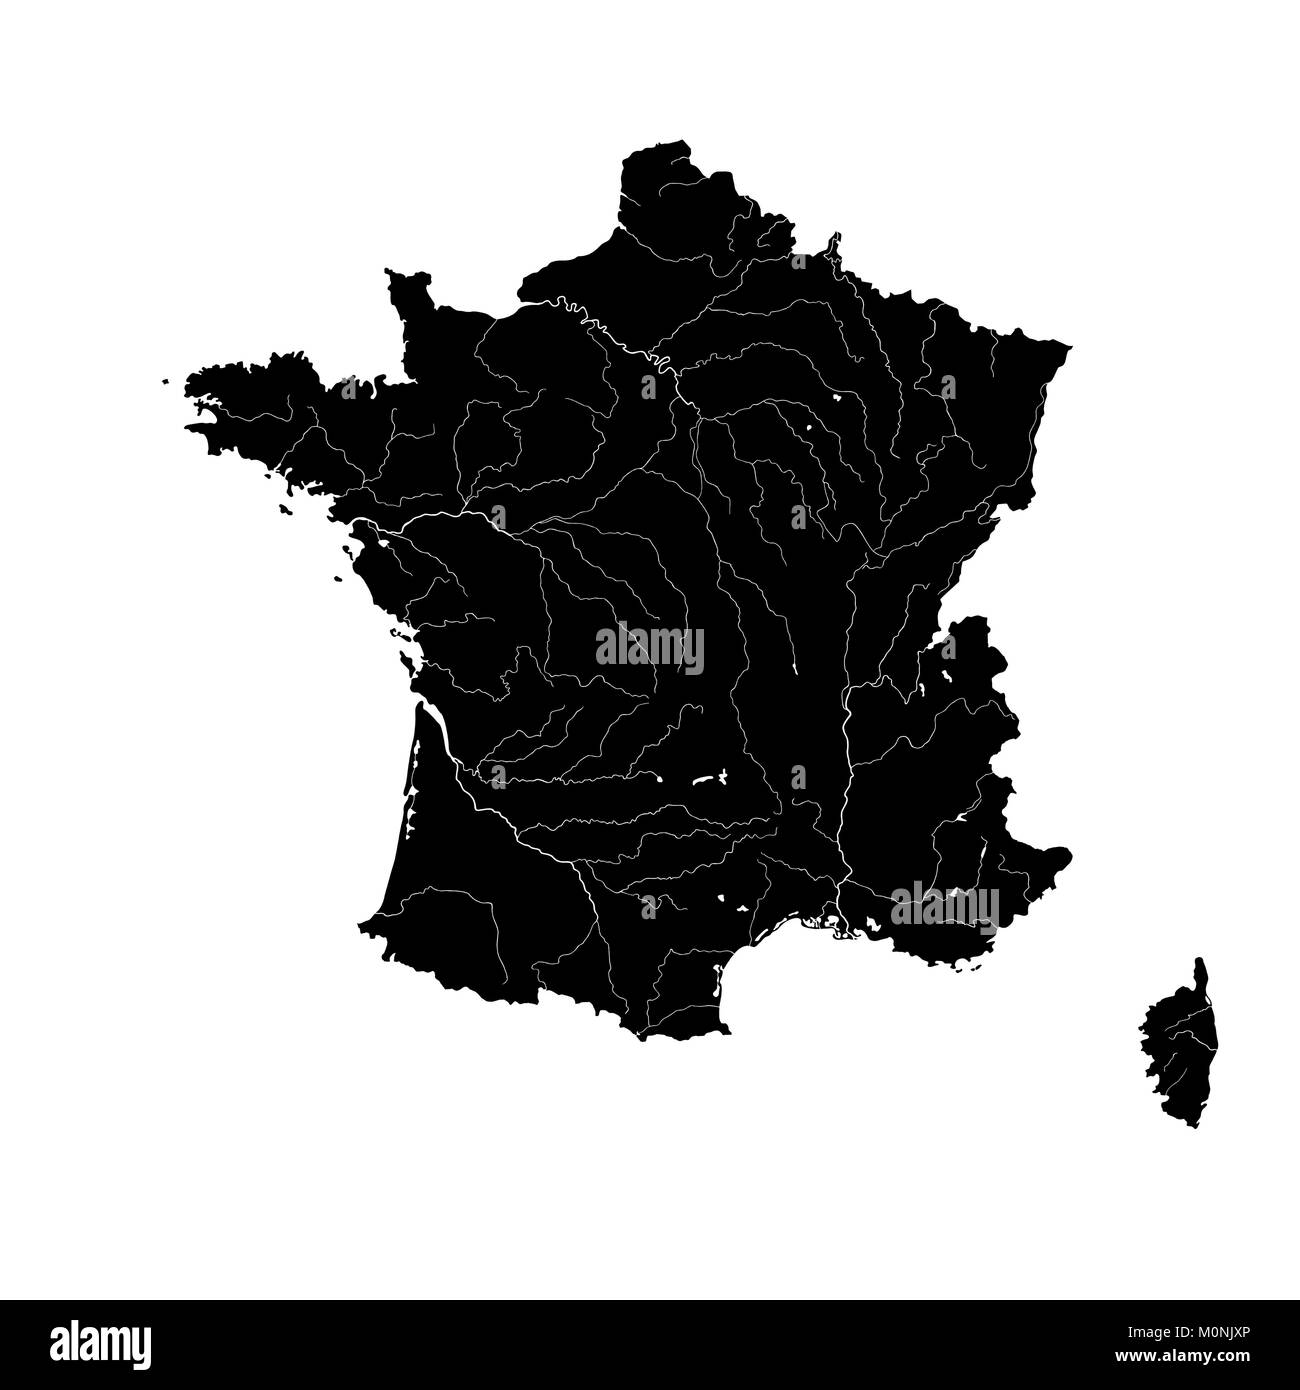 Map Of France Rivers.Outline Map Of France With Rivers Stock Vector Art Illustration